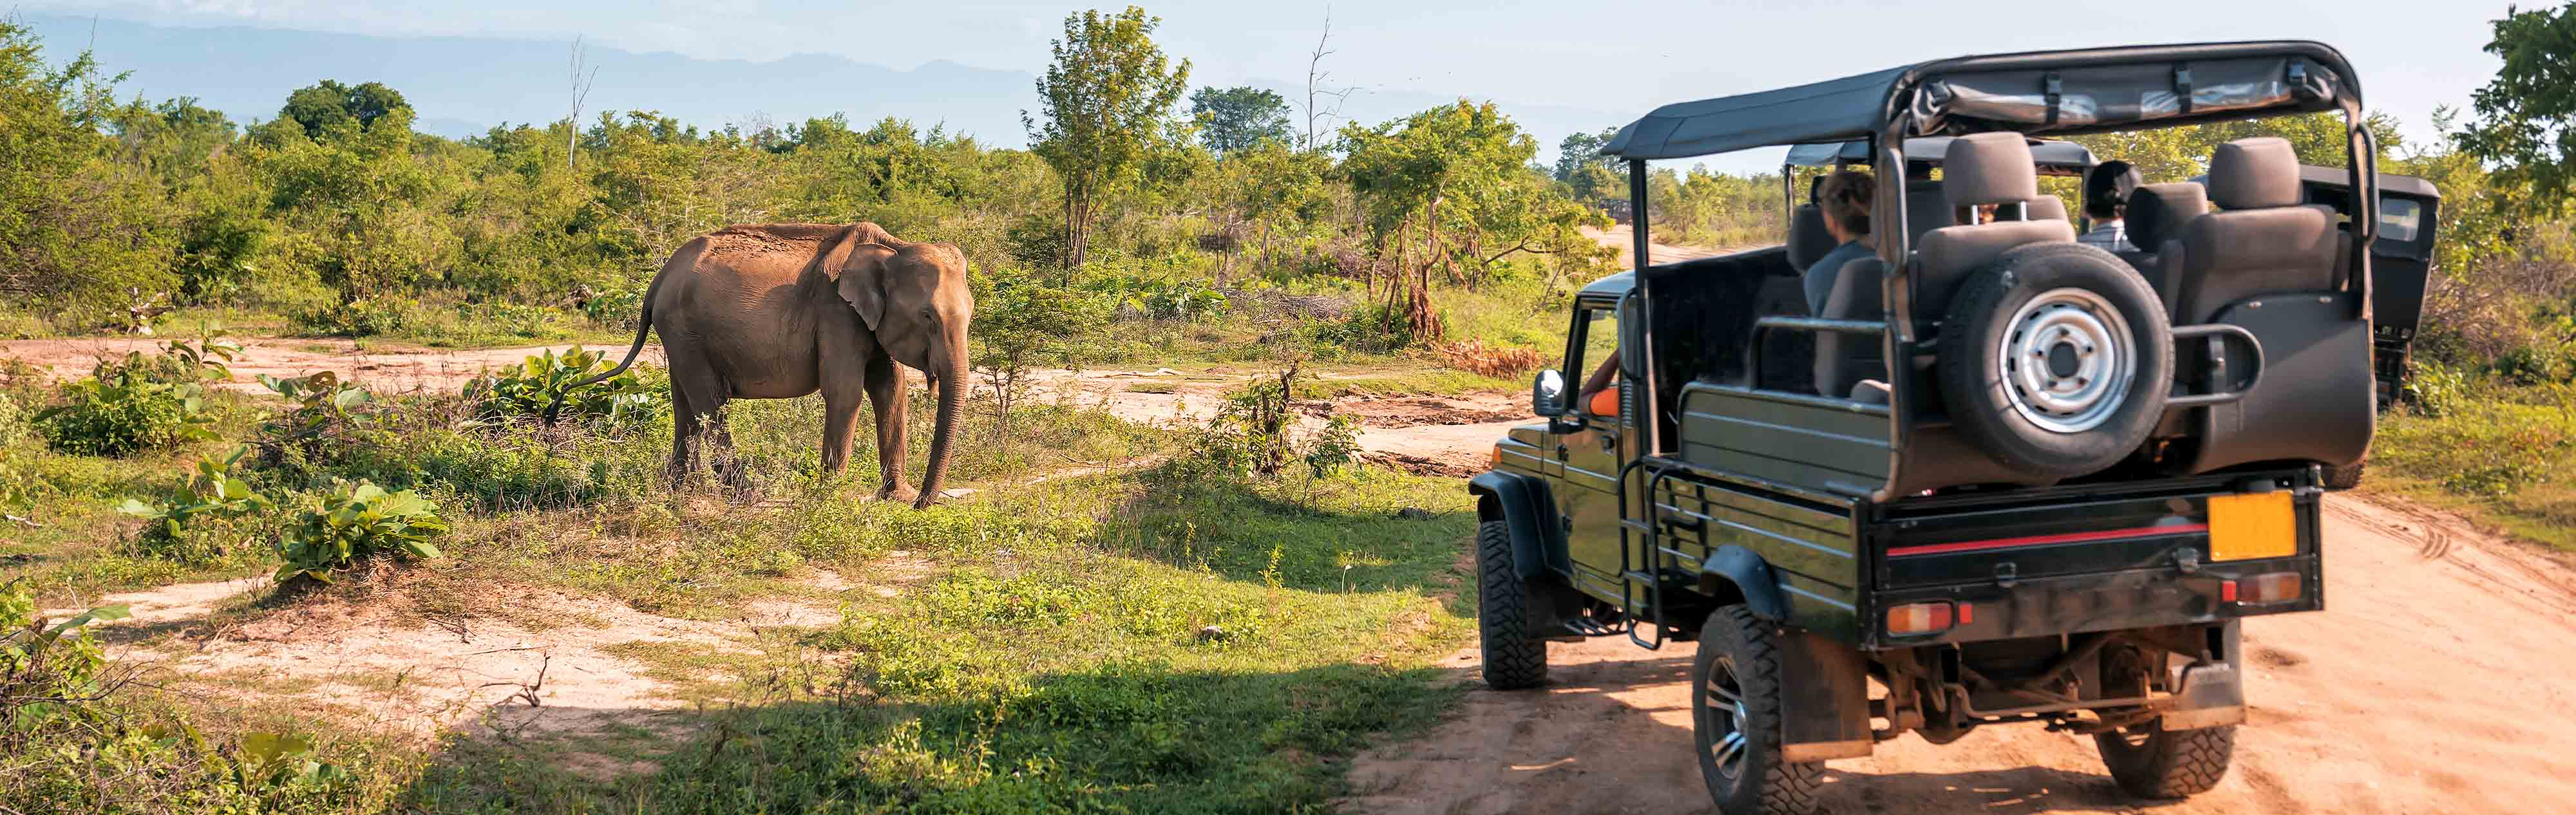 Yala National Park Safari